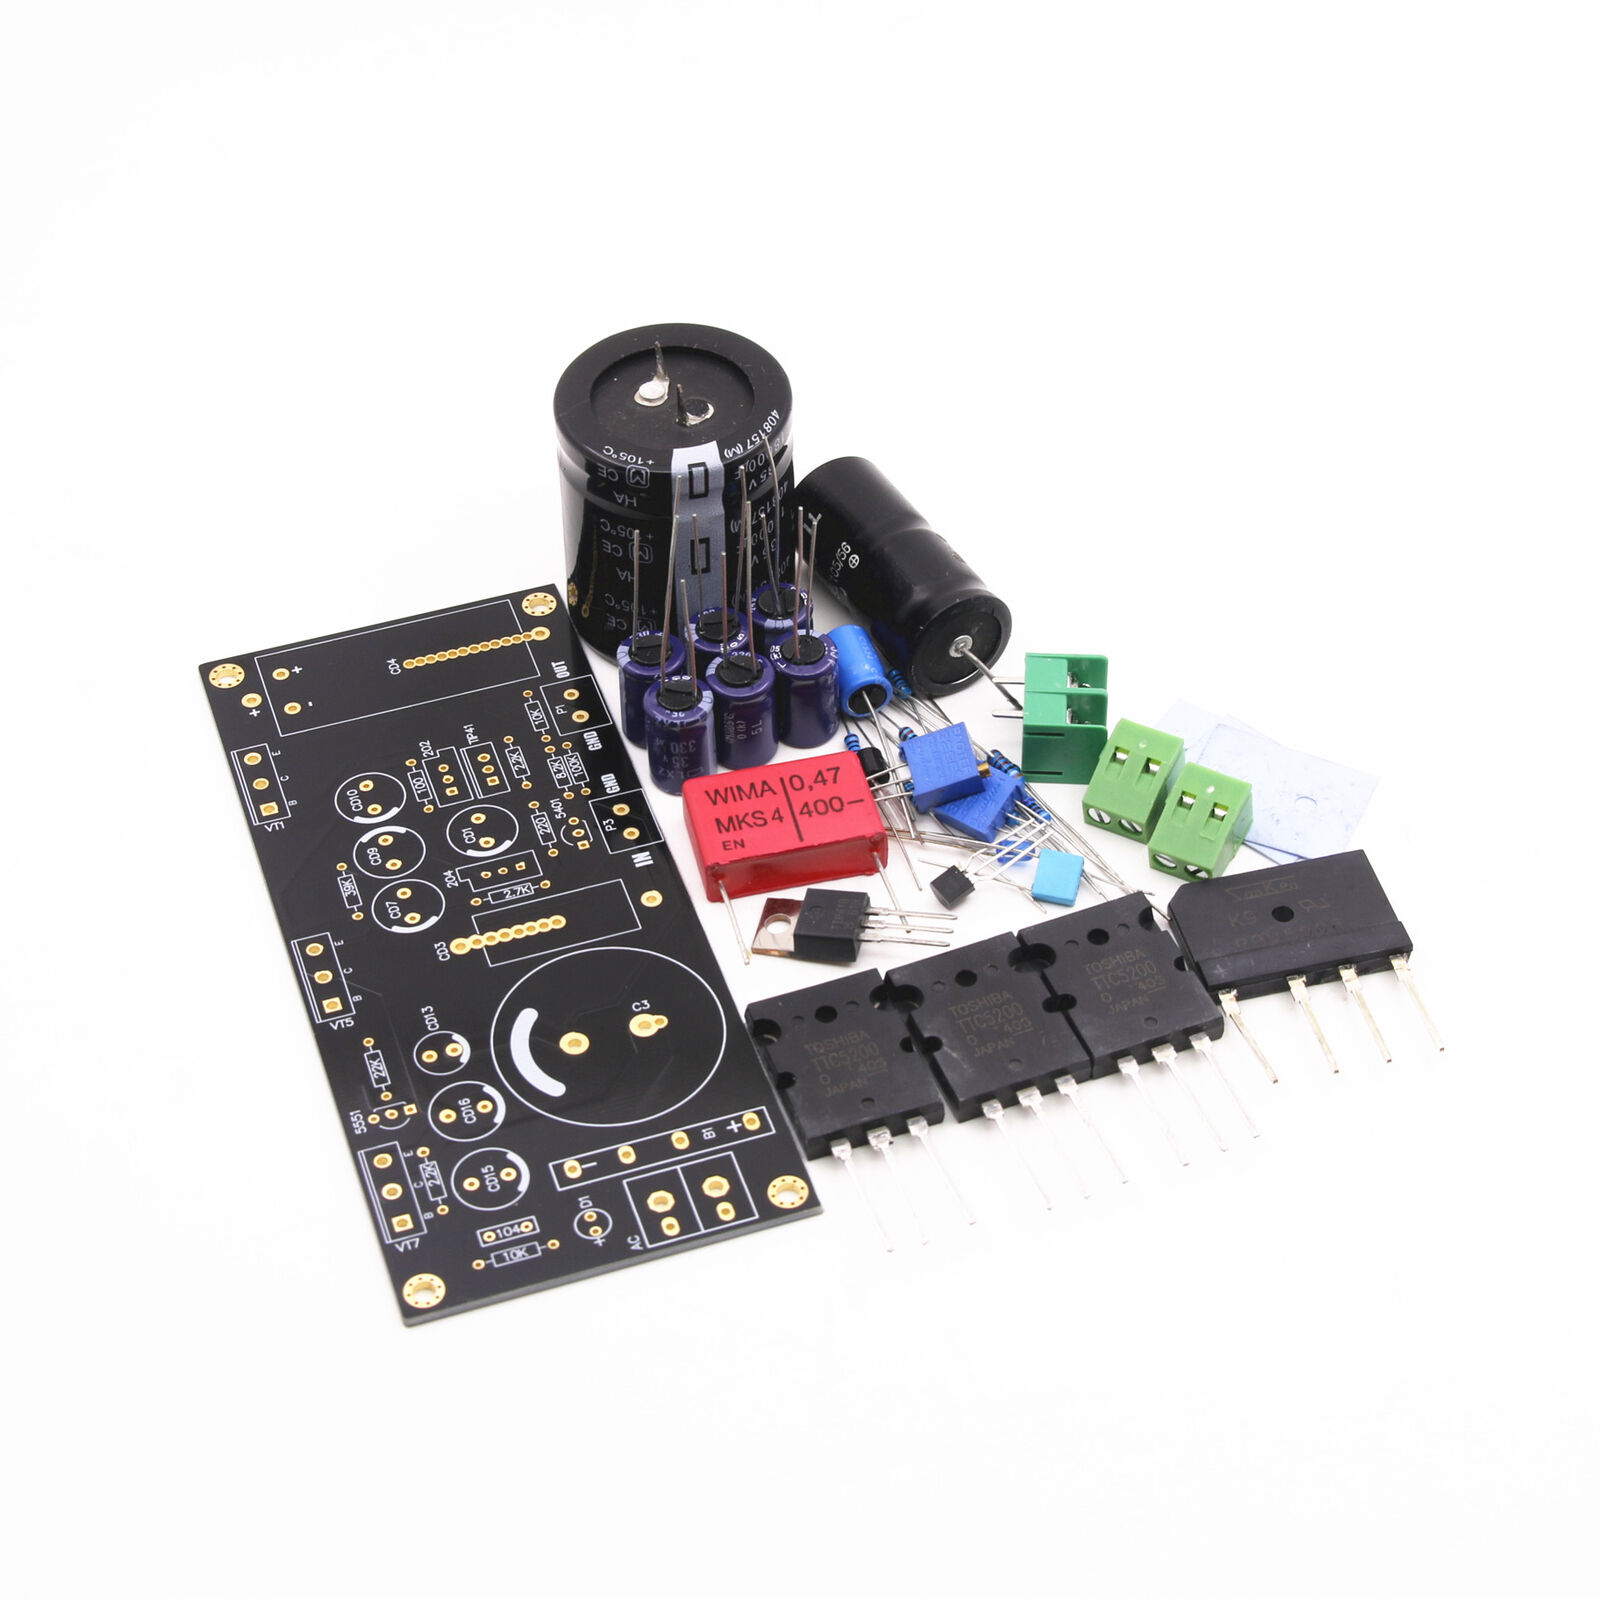 Diy Kit Mono Hood 1969 Class A Lt1083 5200 Power Amplifier Board Ocl 1 Of 2only 5 Available